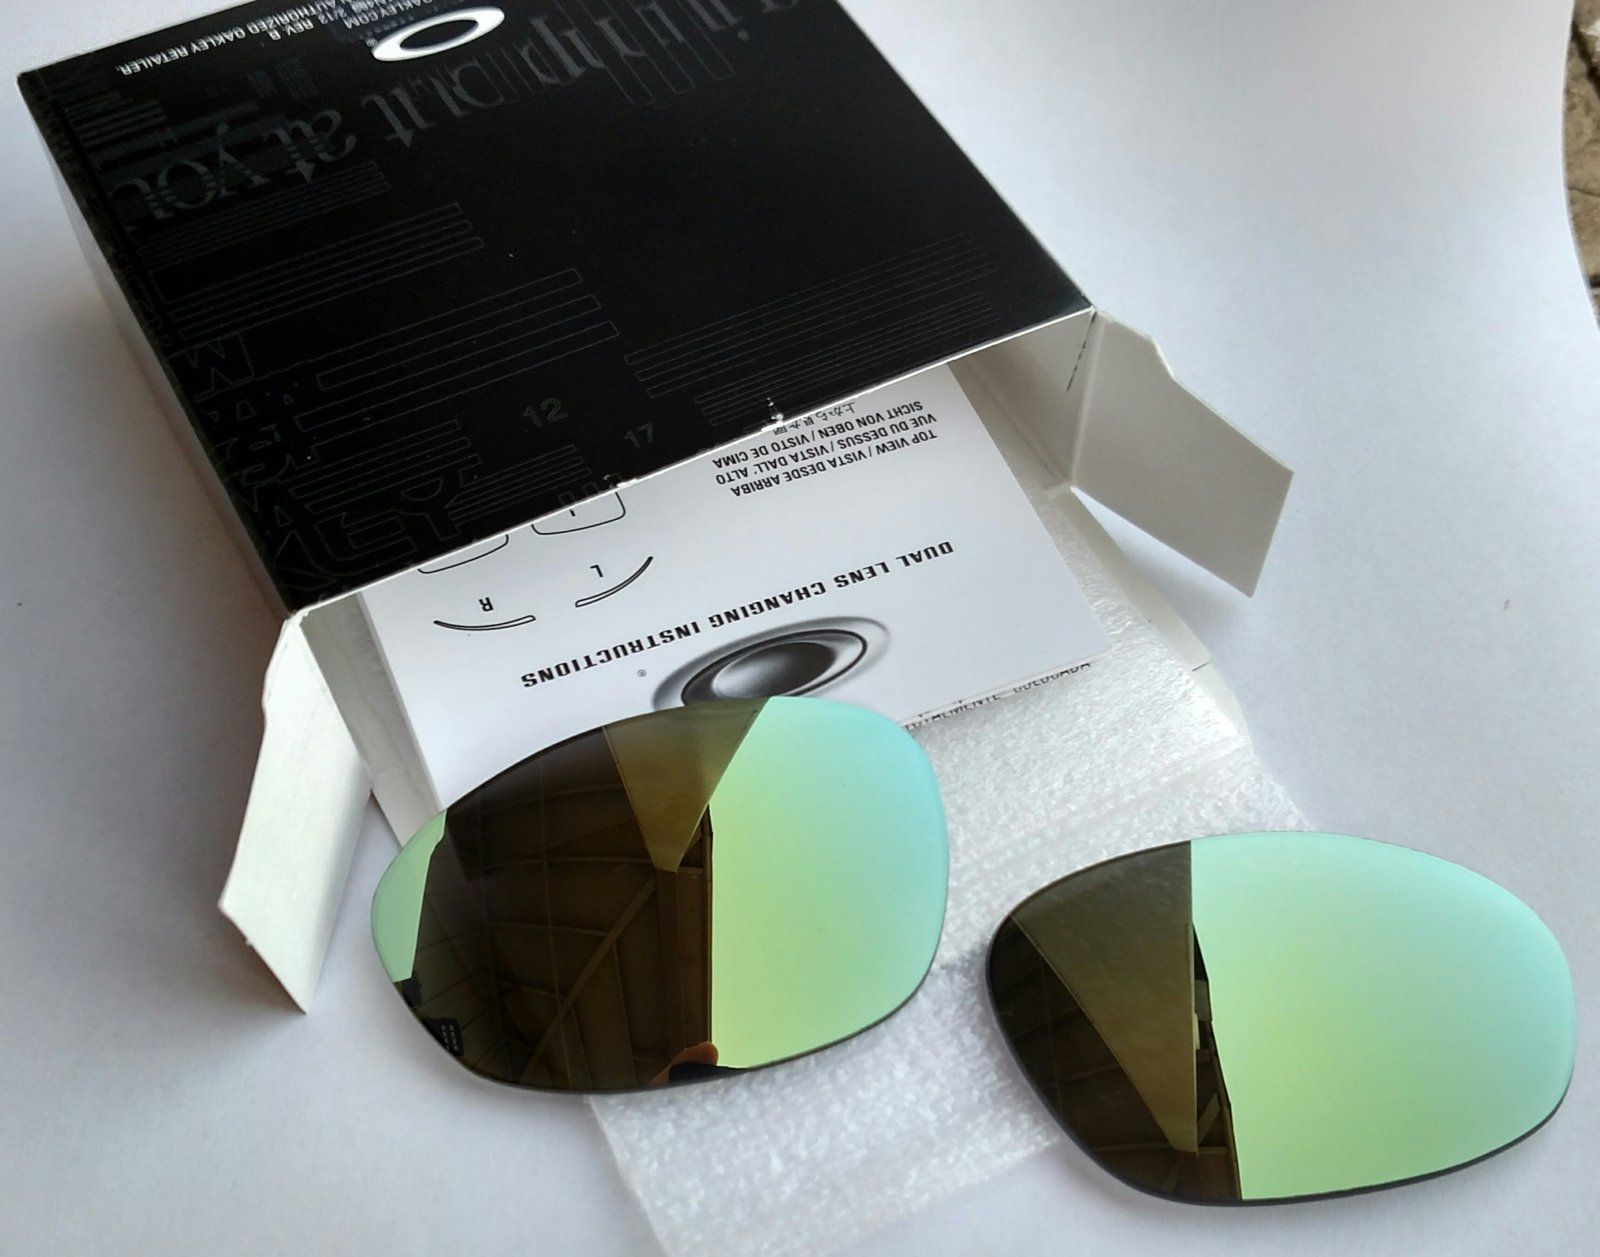 XX & JULIET CUSTOM CUT LENSES FOR X-METALS - IMG_20161115_164033.jpg